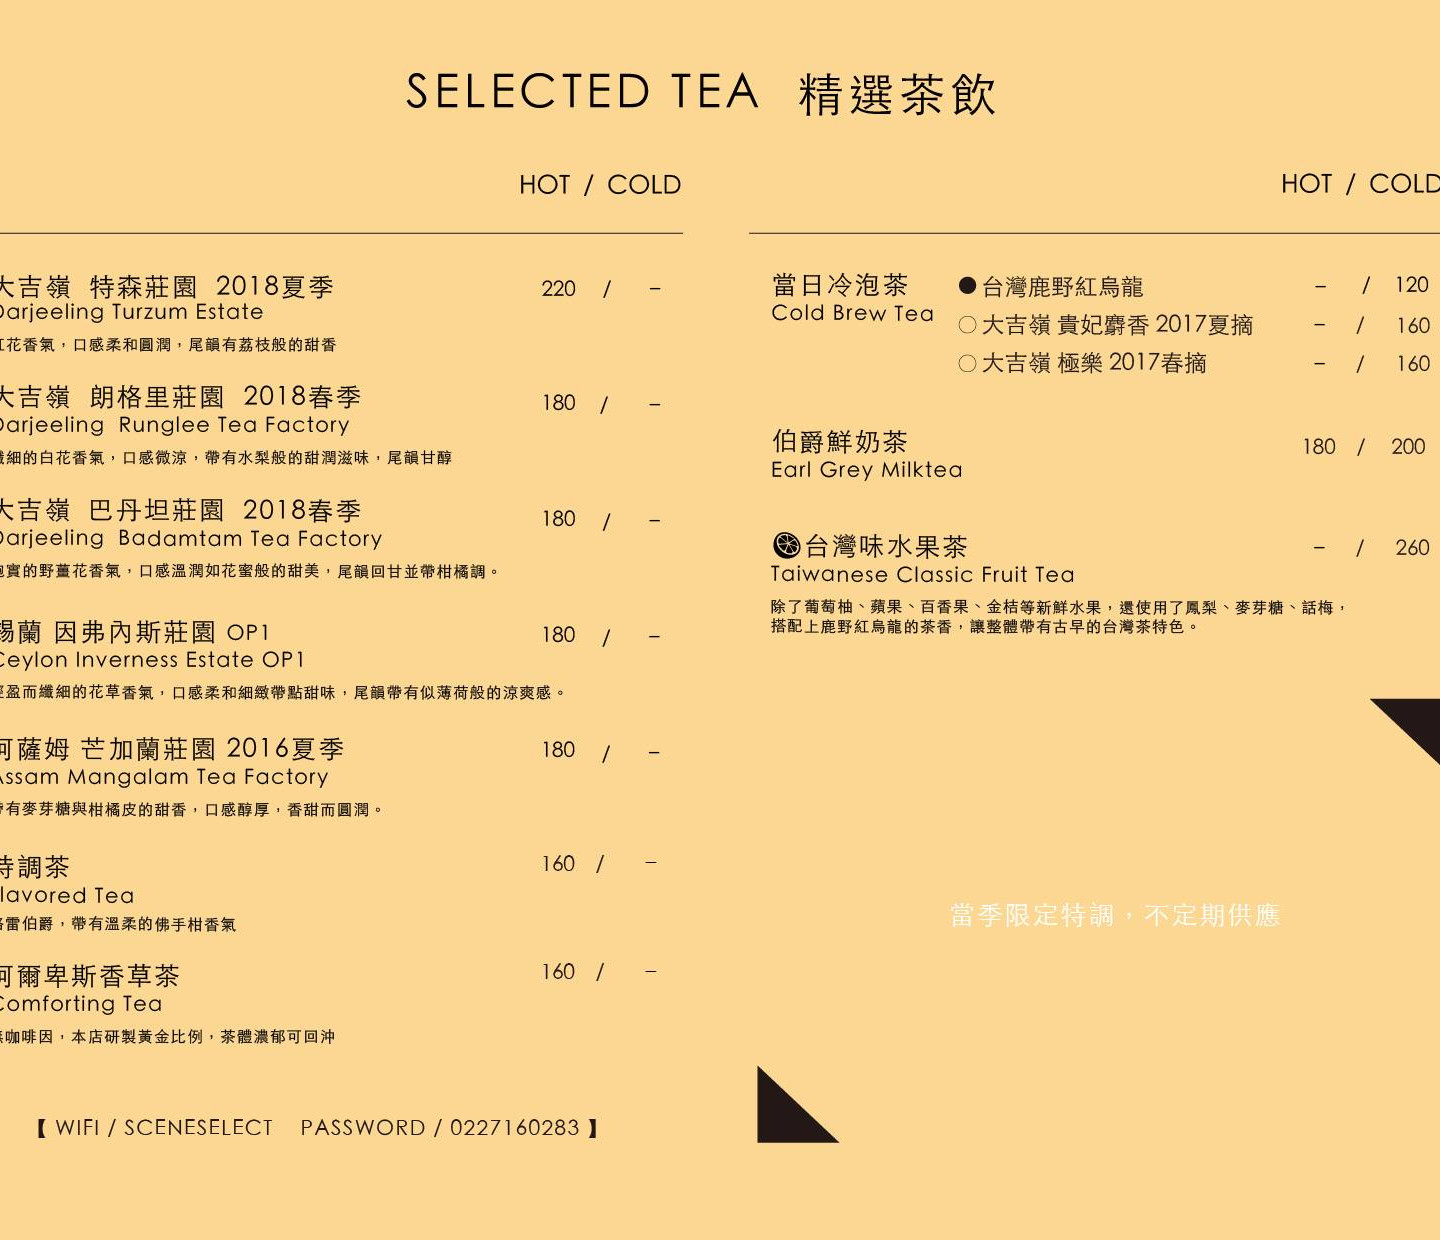 光景Scene Select Taipei Menu